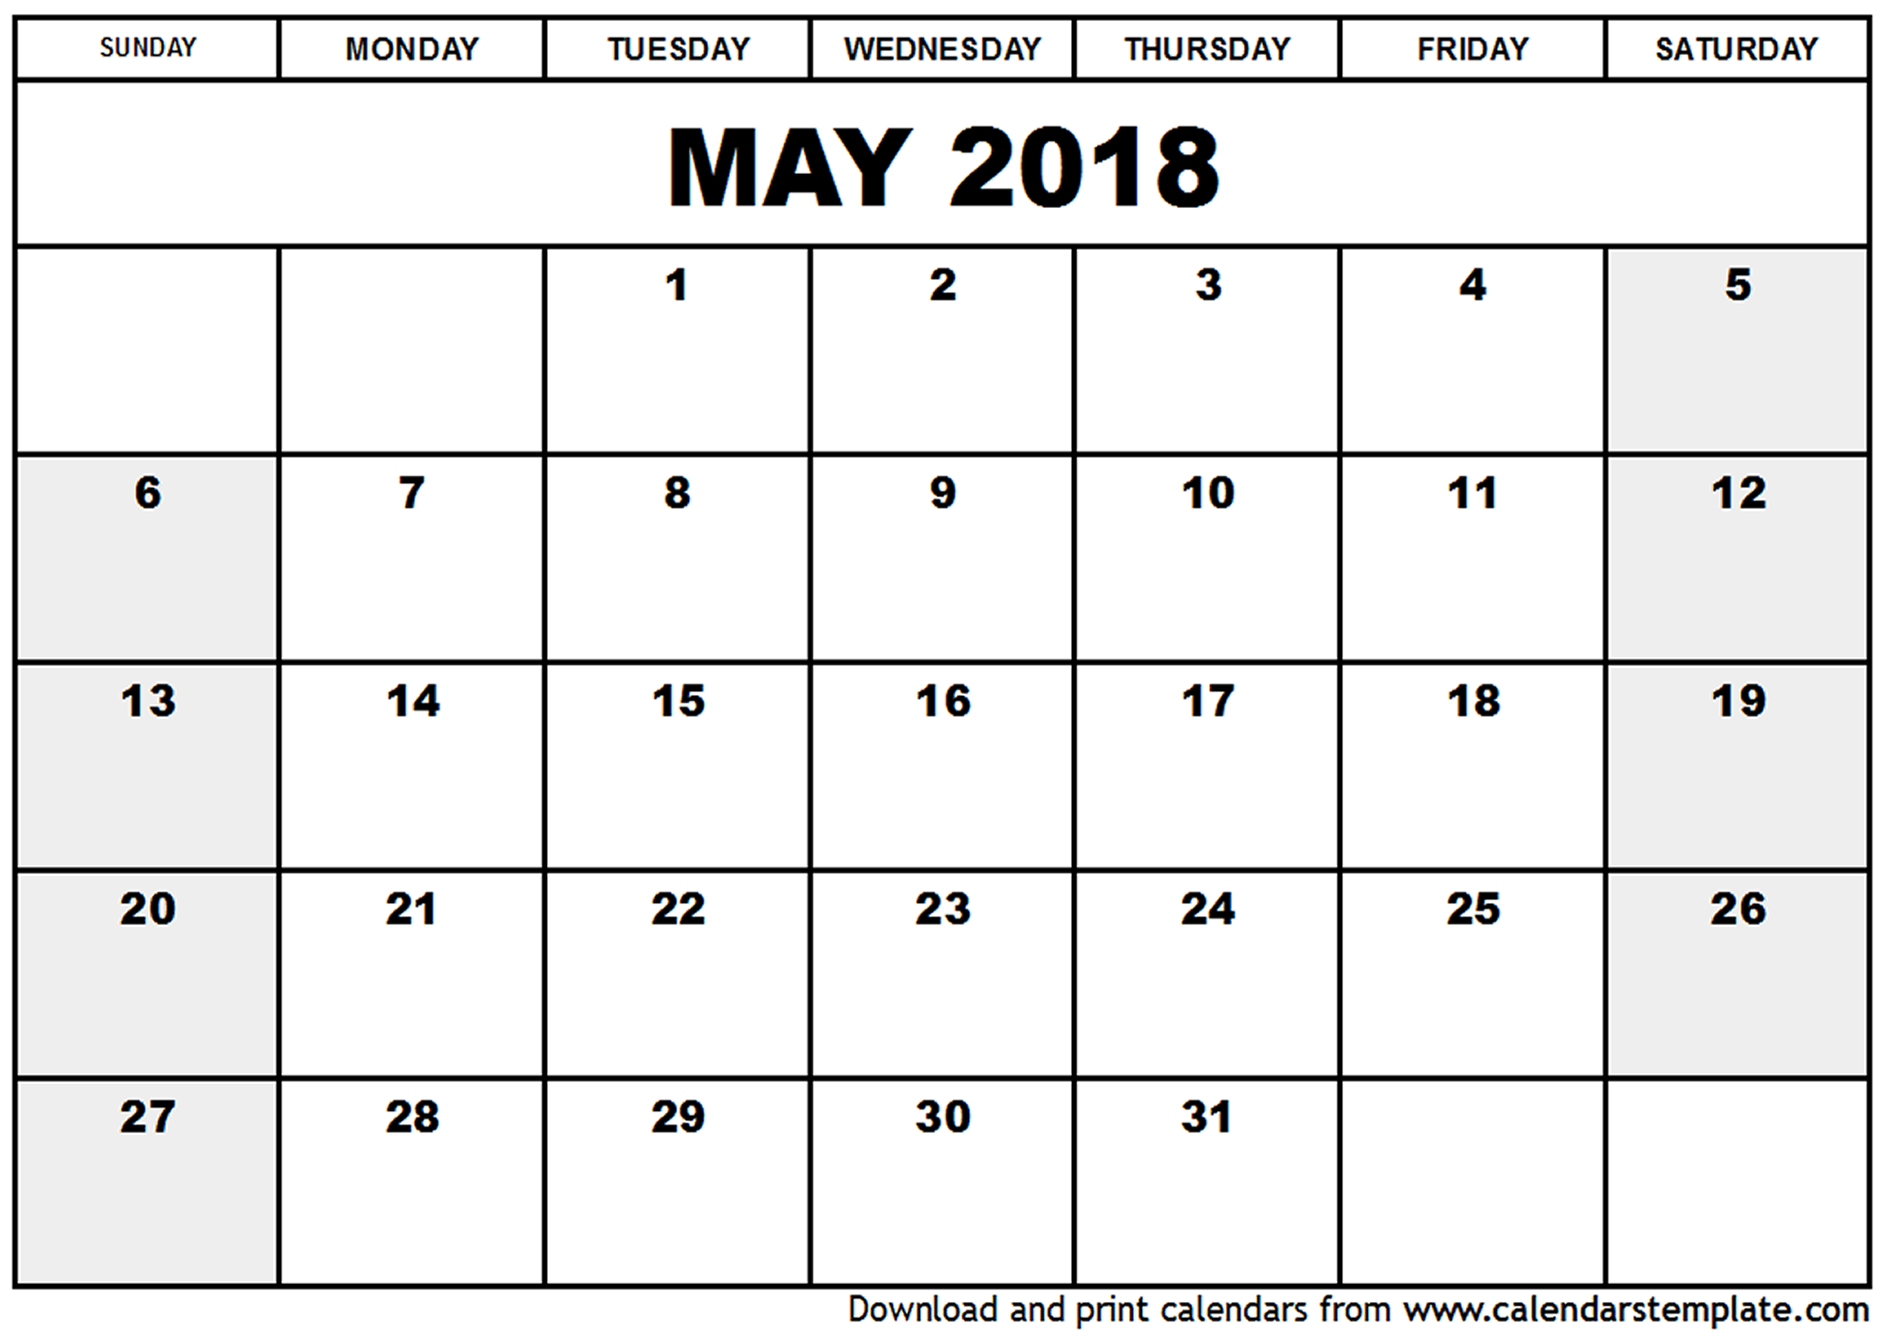 Latest may 2018 calendar printable